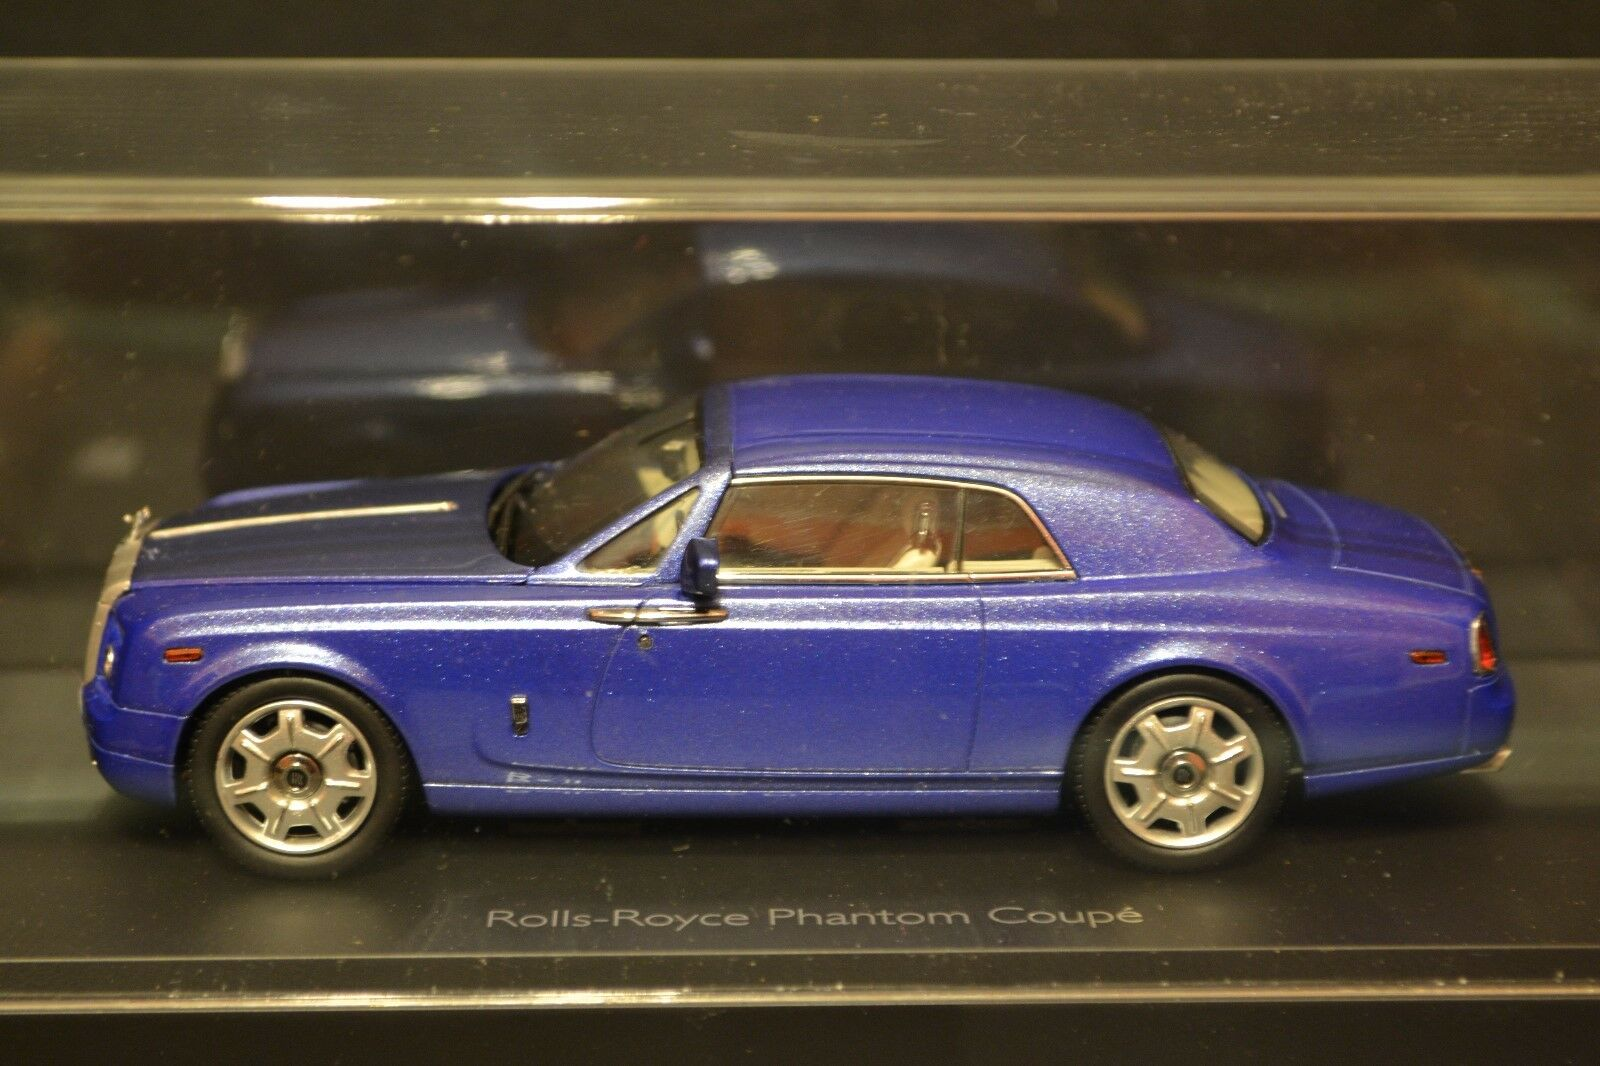 Rolls Royce Phantom Coupe 2012 Kyosho Dealer Edition diecast in scale 1 43